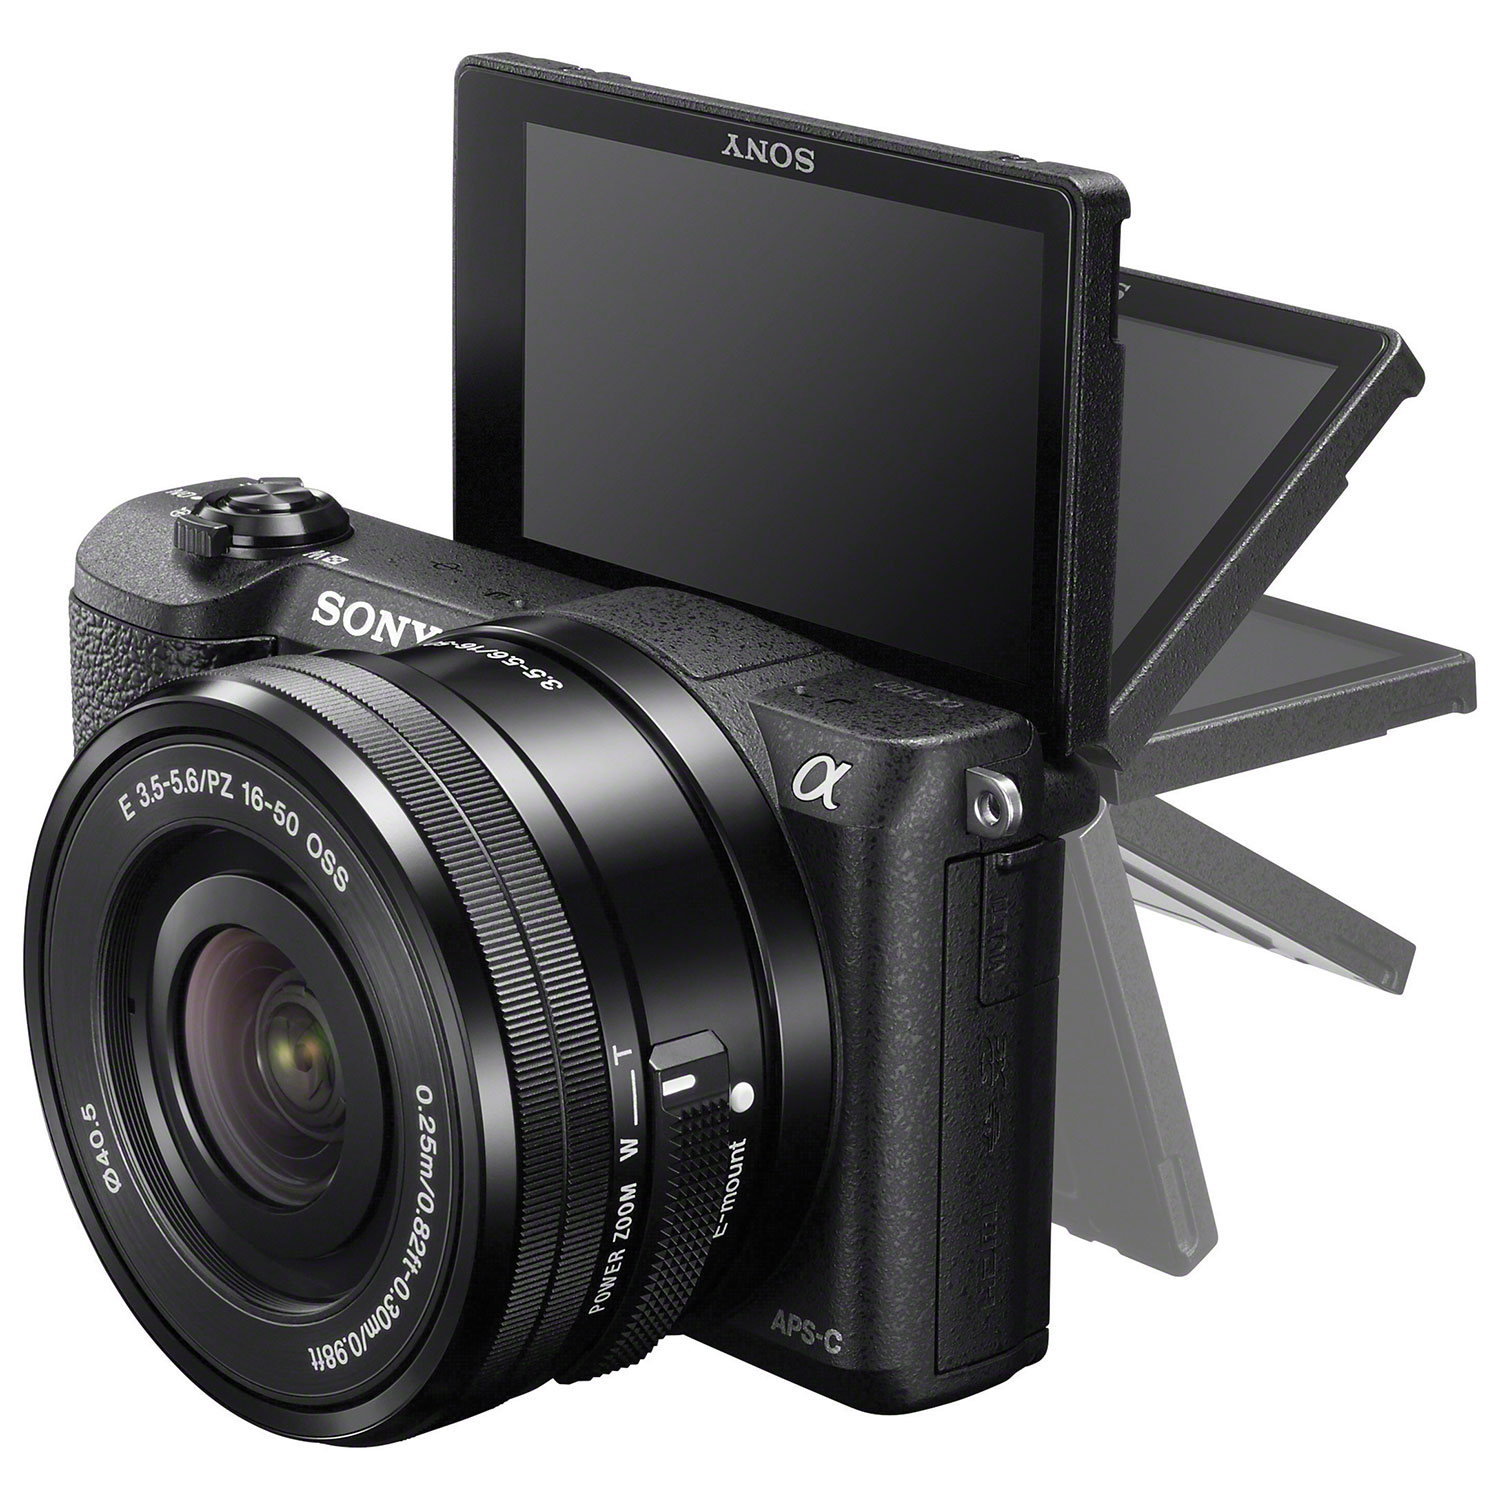 Sony a5100 Mirrorless Camera with E PZ 16-50mm OSS Lens Kit ...